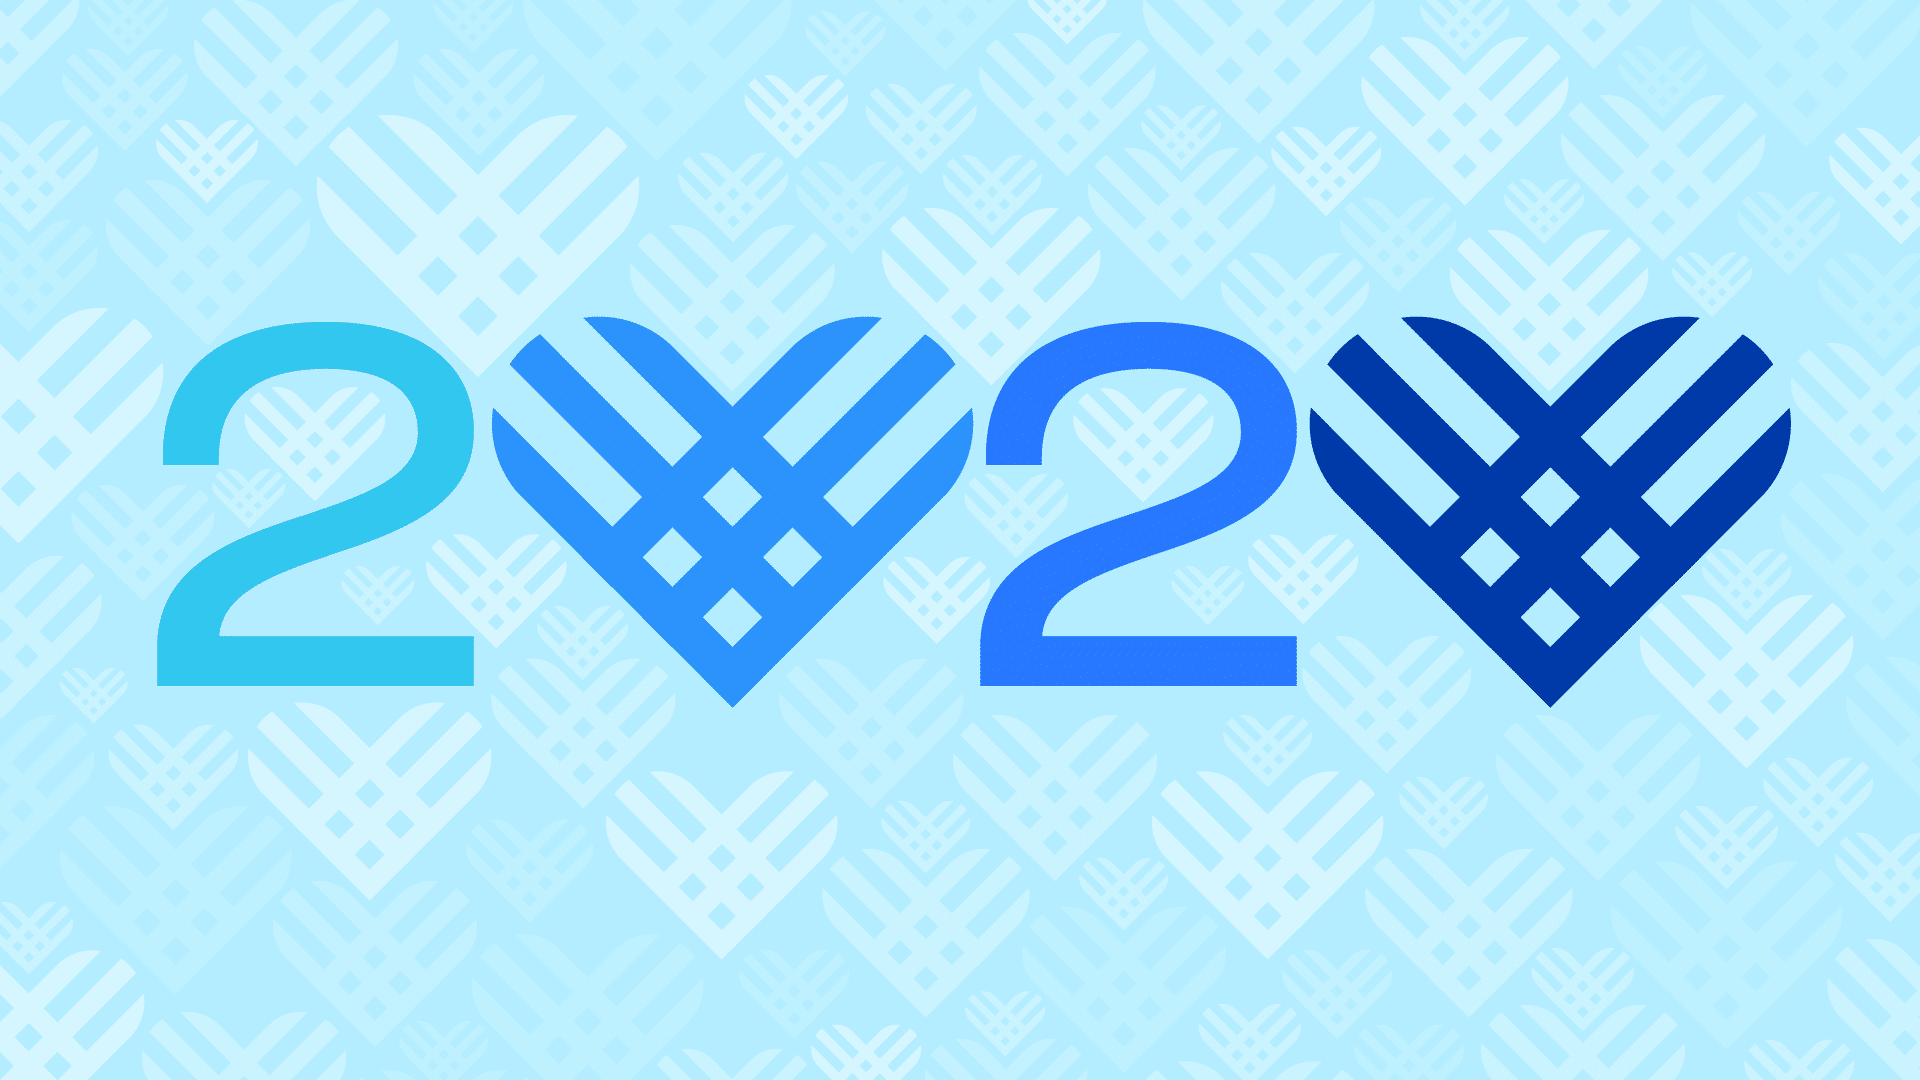 #GivingTuesday 2020 with hearts